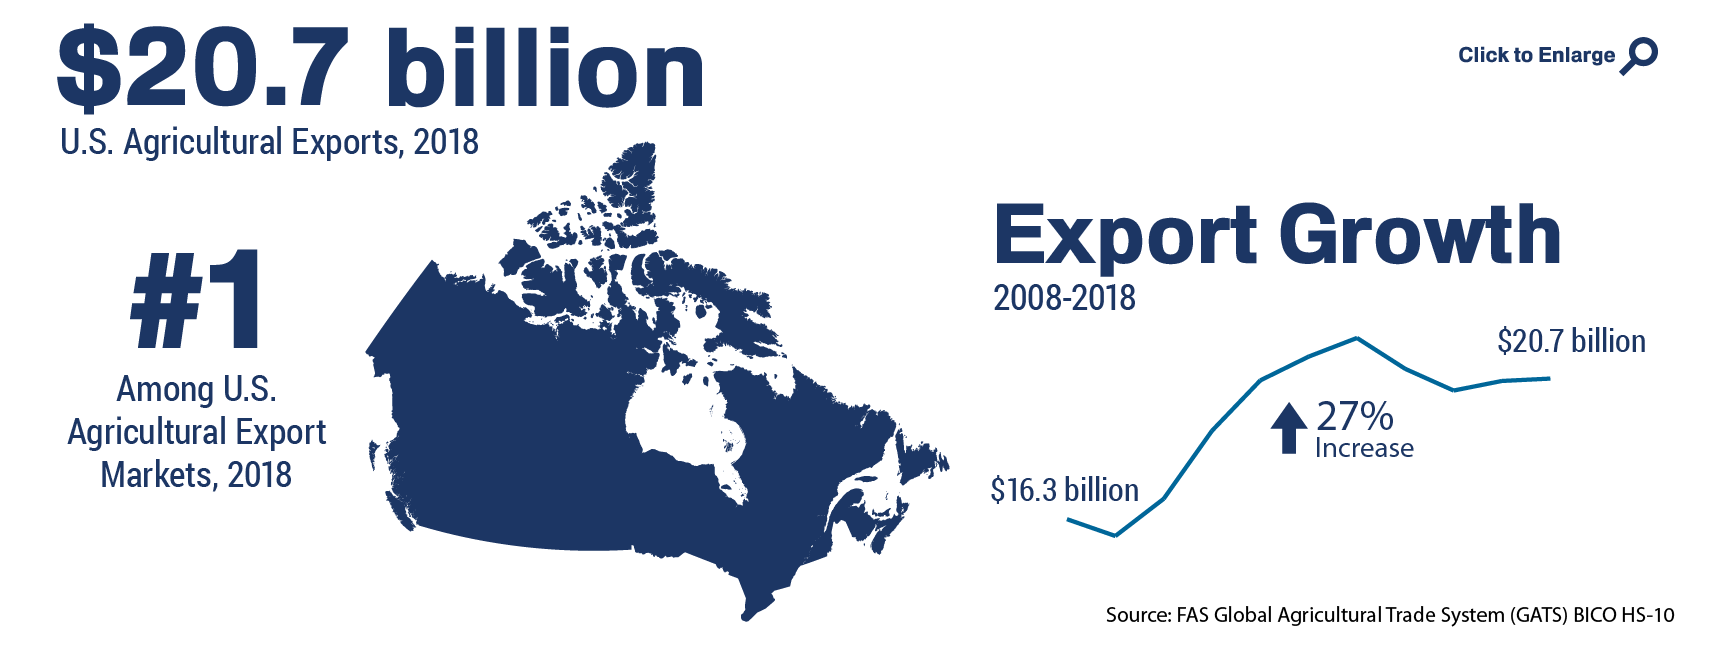 Infographic showing the ranking and total of U.S. agricultural trade to Canada in 2018